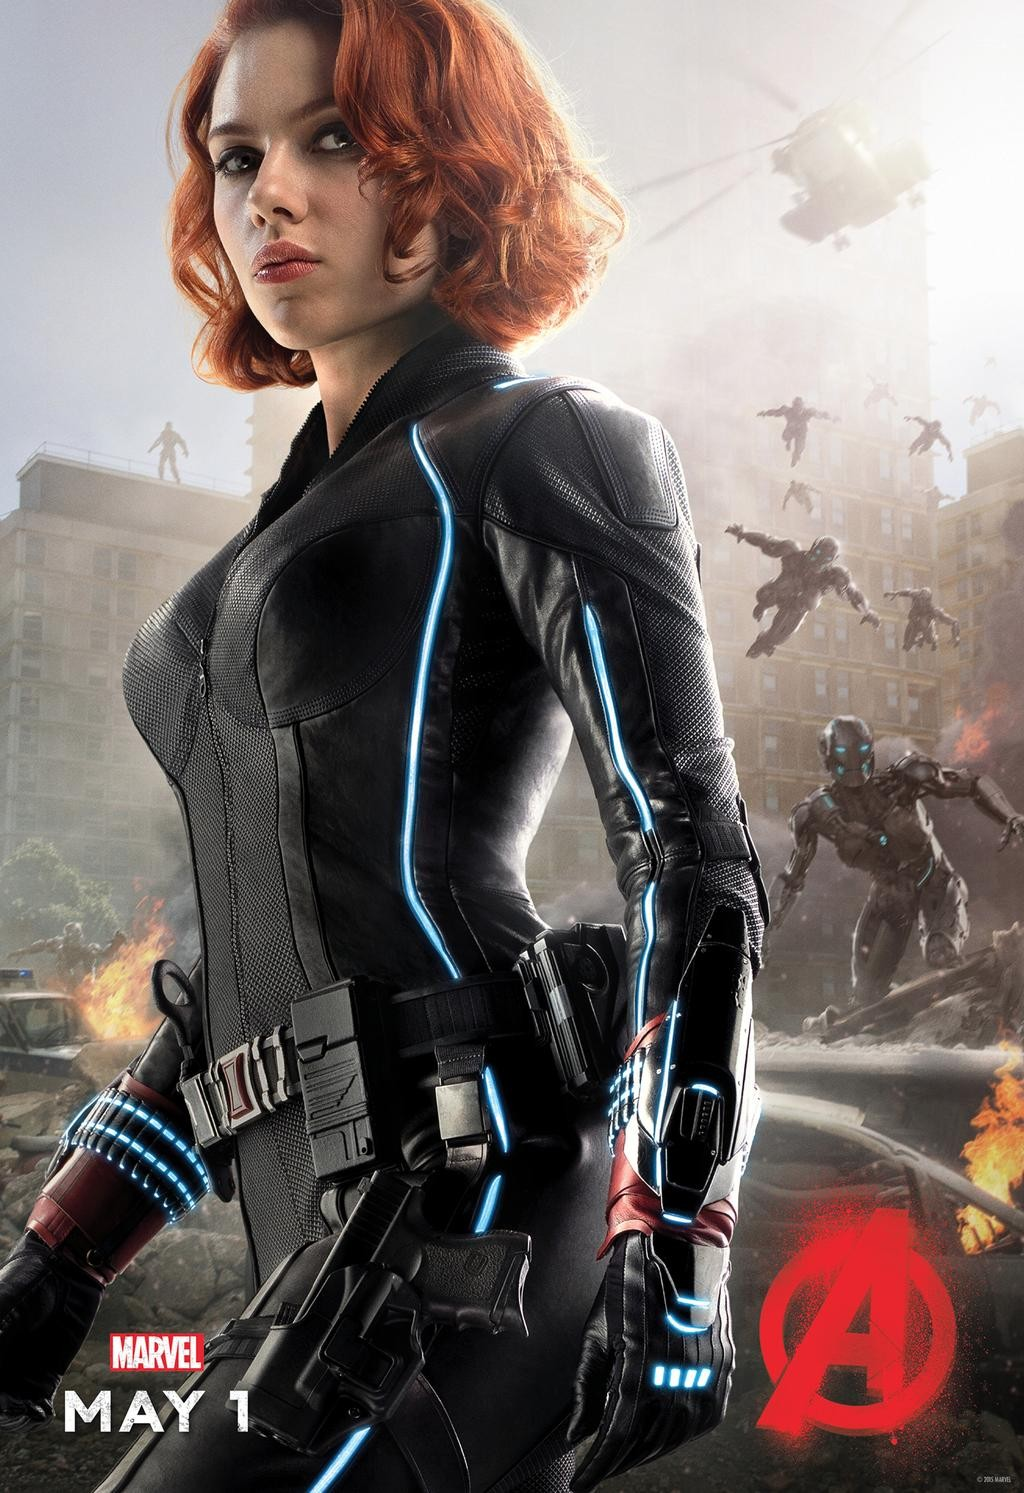 Black_Widow_AOU_Poster.jpg